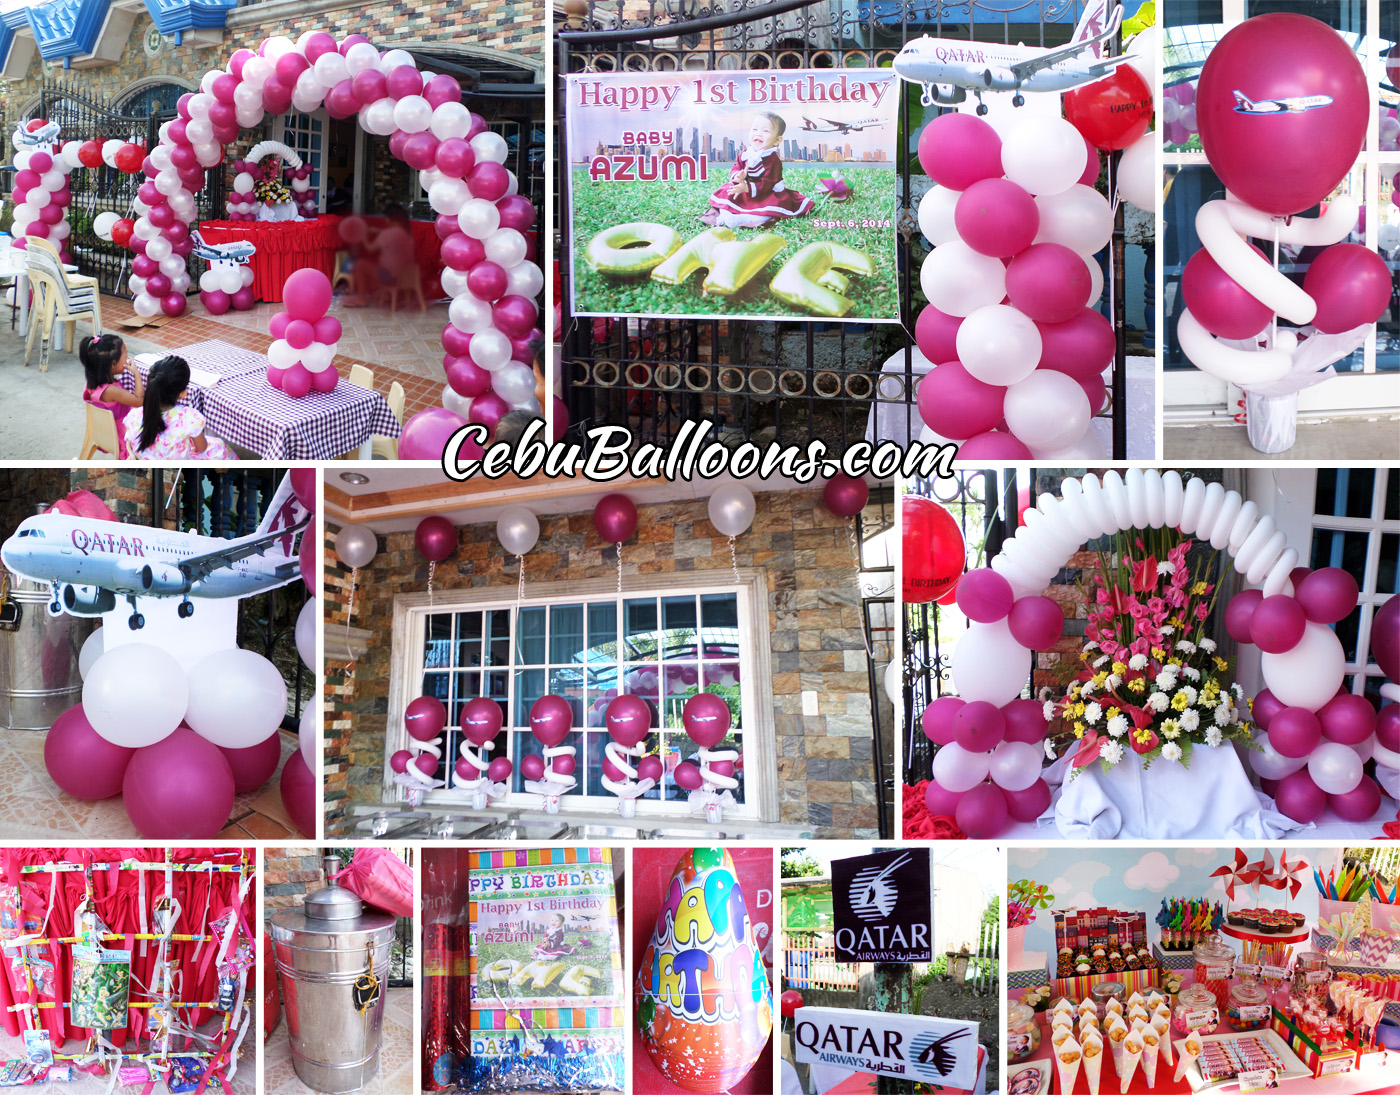 Cebu Balloons and Party Supplies Maranga